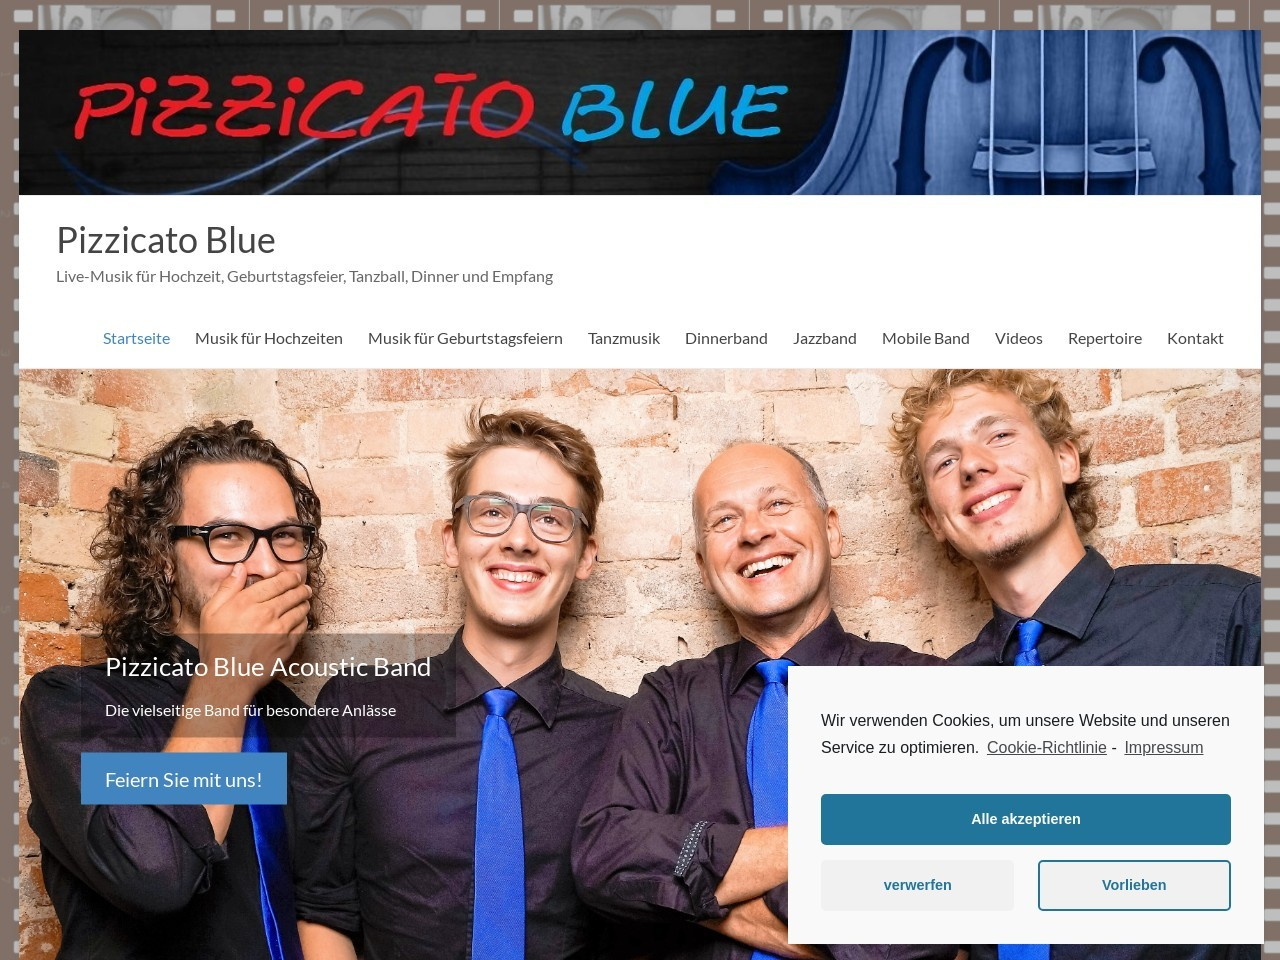 Pizzicato Blue Acoustic Band